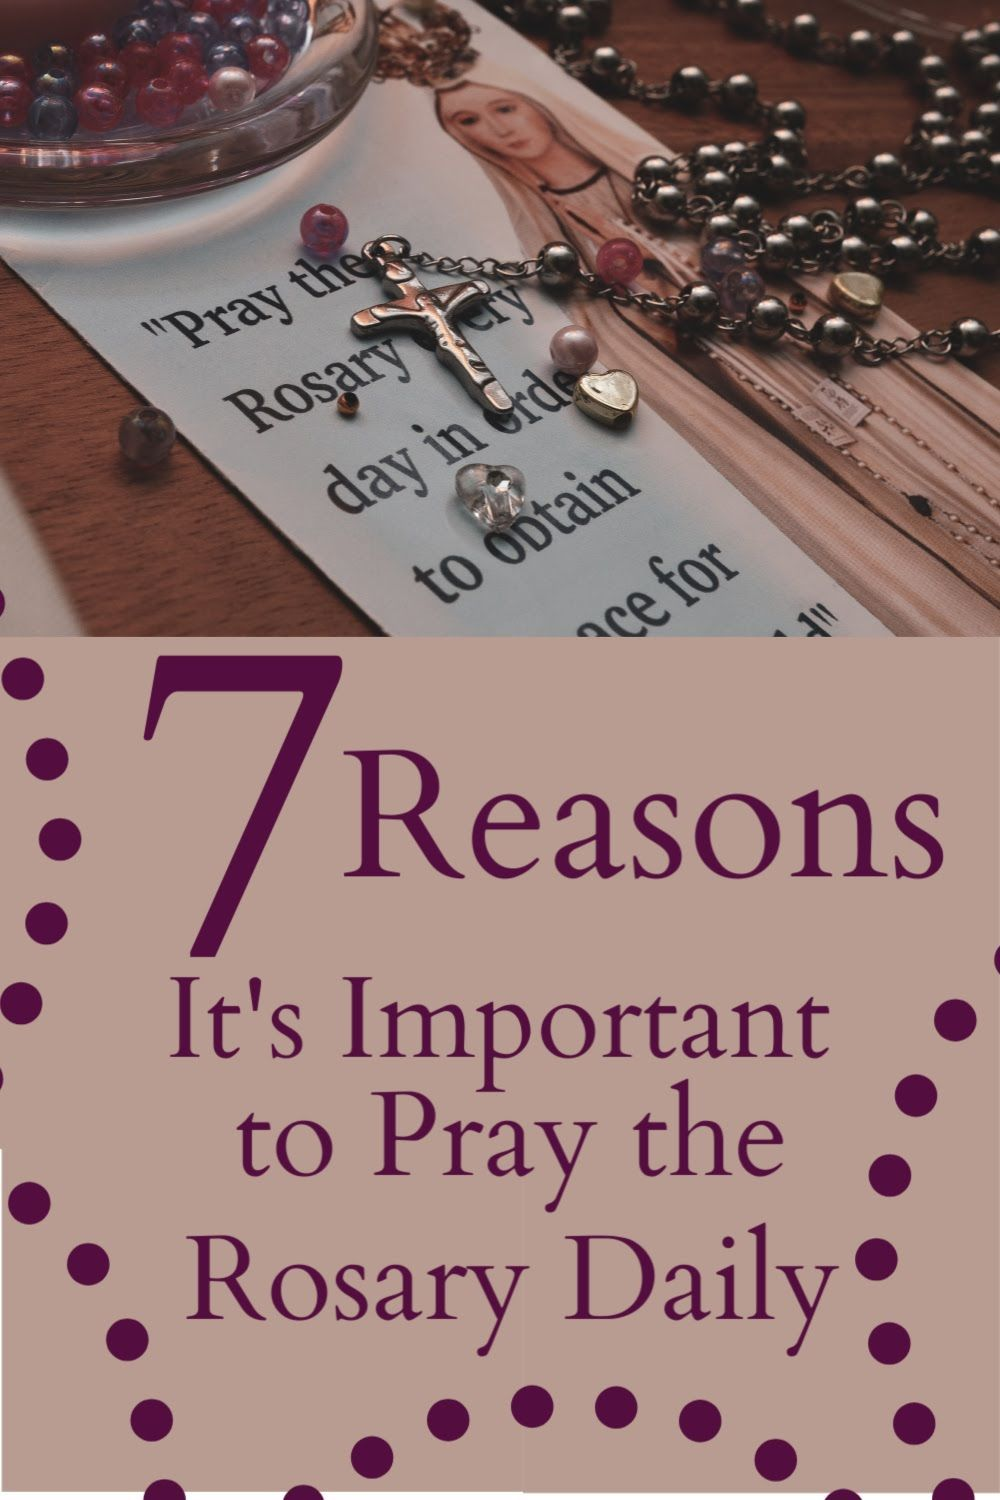 7 Reasons Why You NEED to Make Praying the Rosary a Daily